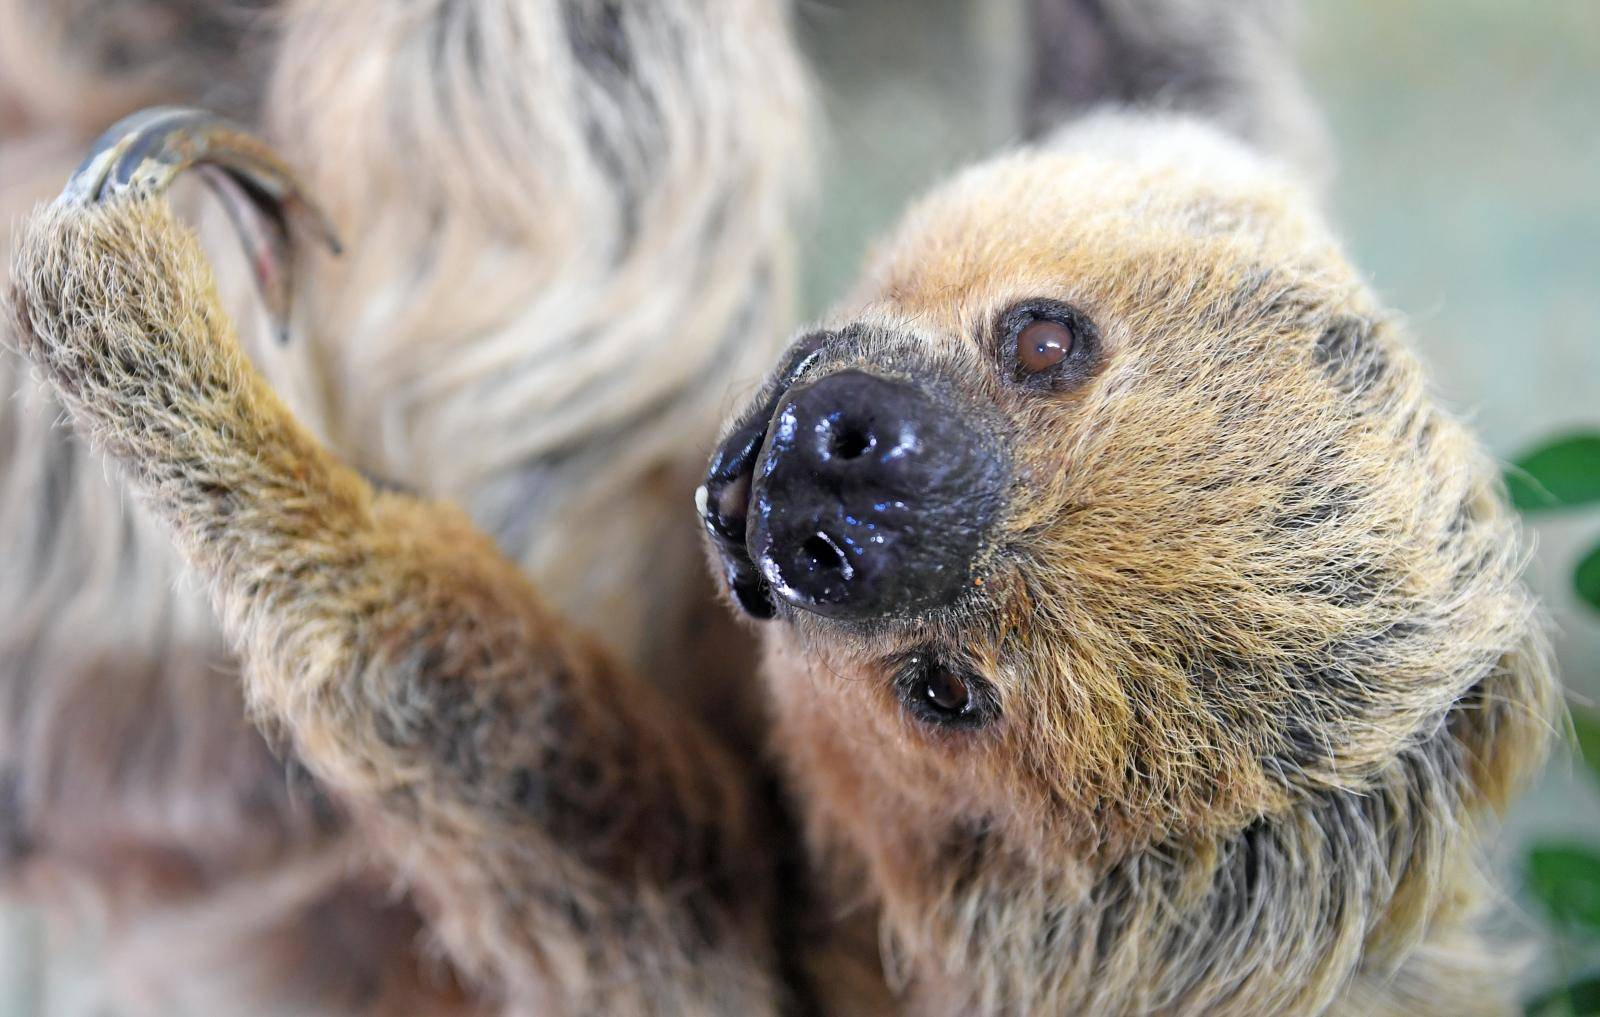 World's oldest sloth turns 50